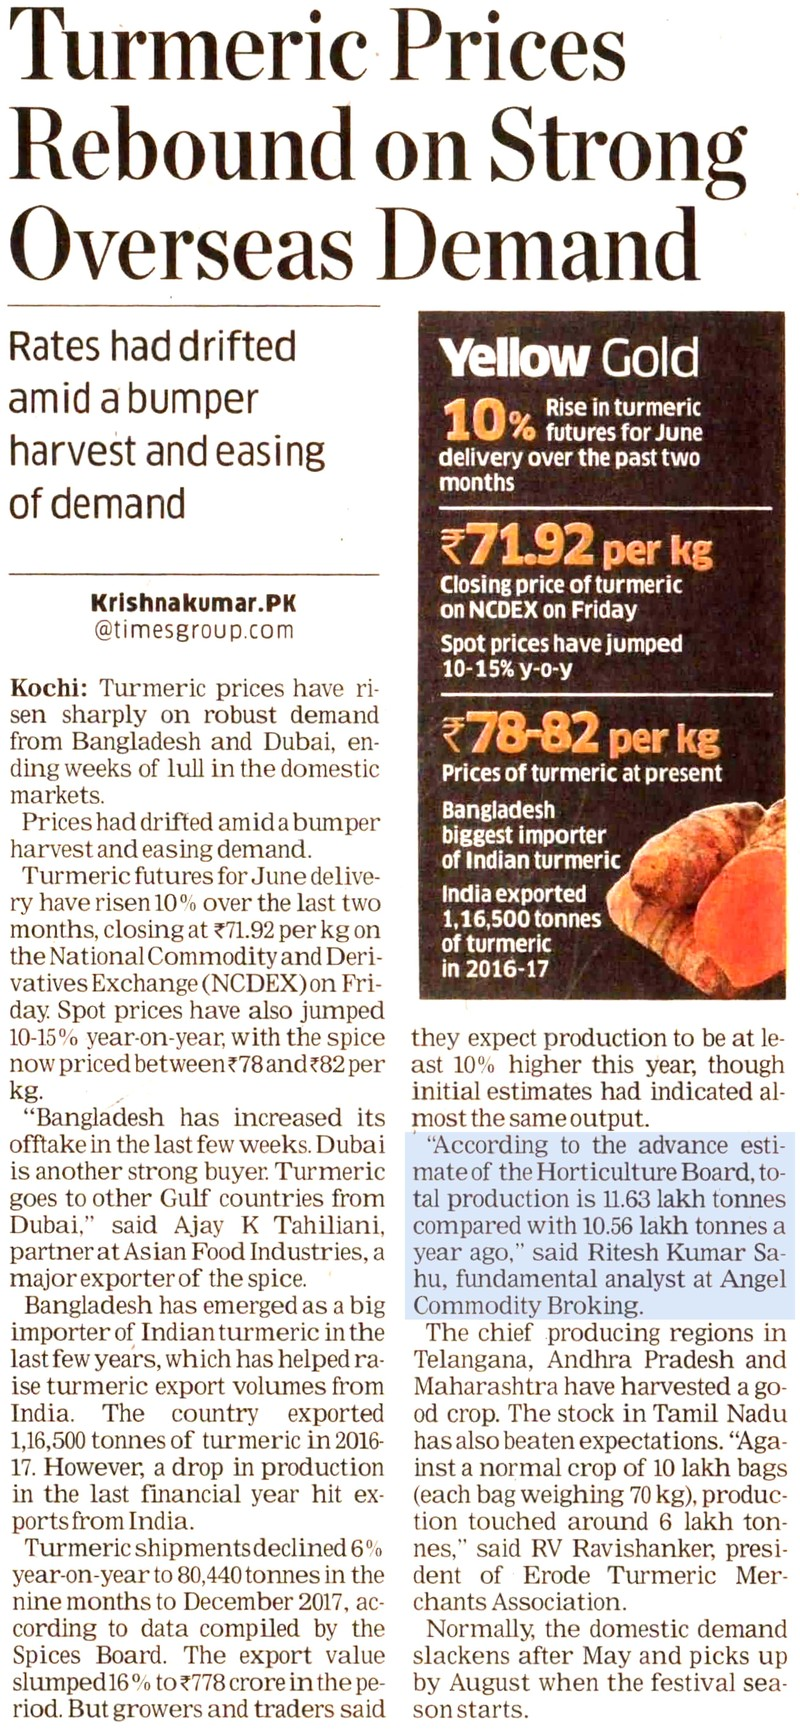 Turmeric Prices Rebound on Strong Overseas Demand